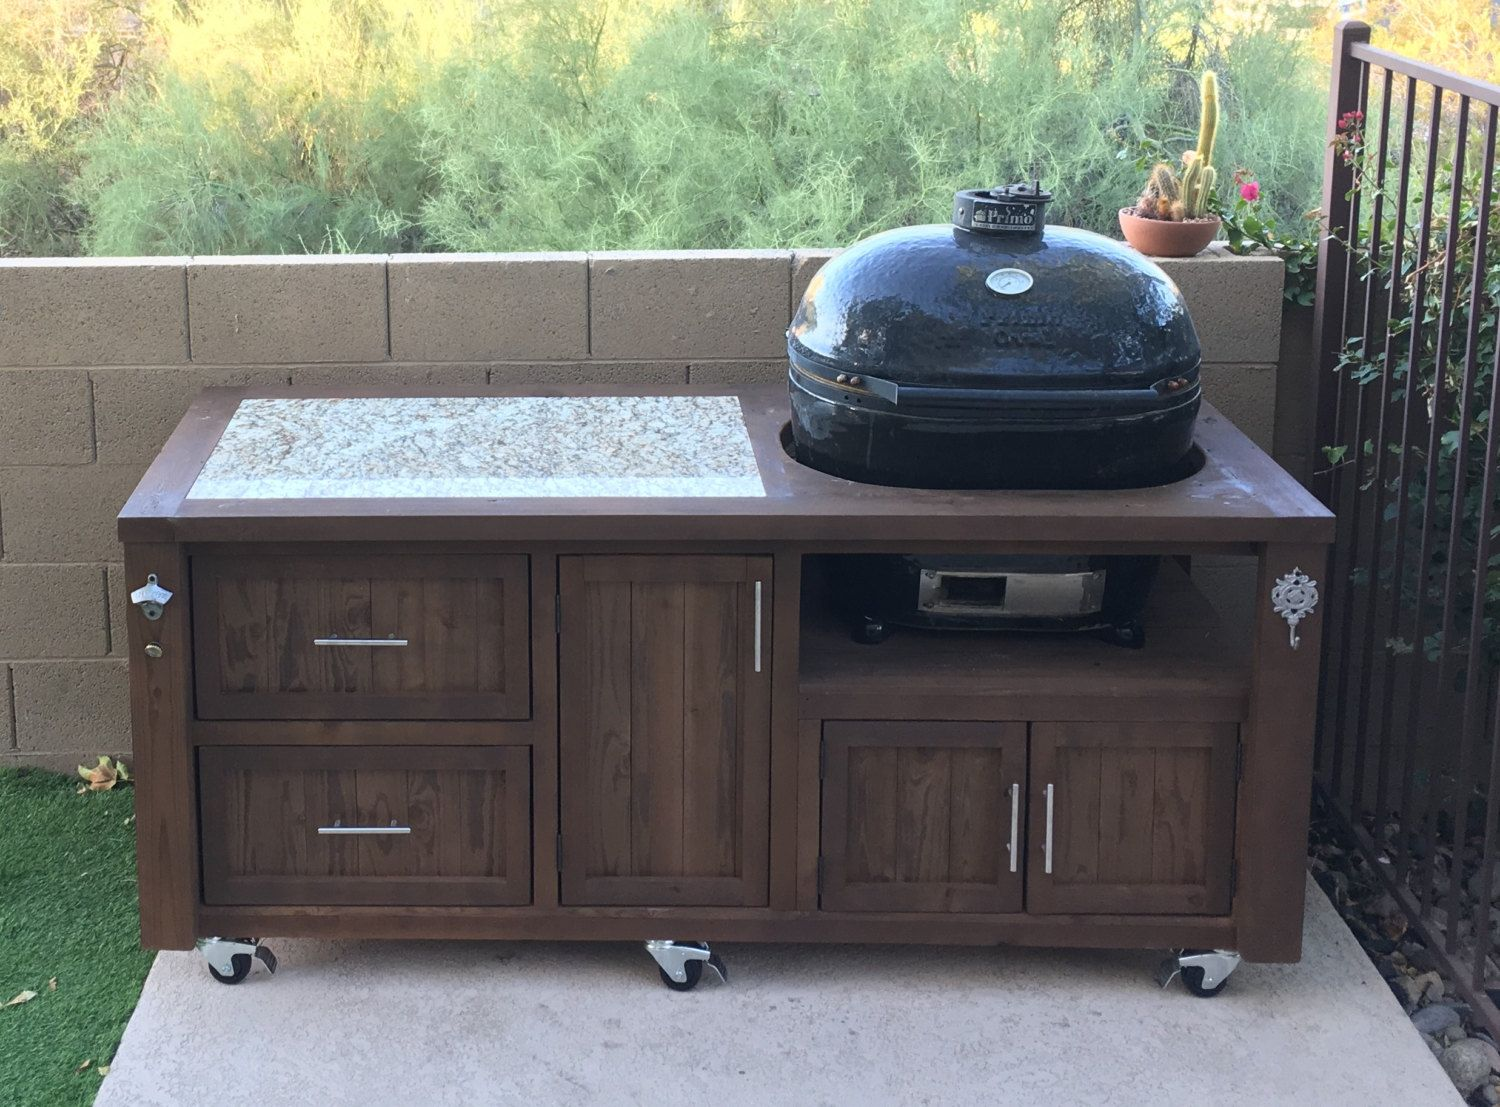 Outdoor Küche Mit Weber Spirit : Grill küche weber south haven cottage rental the kitchen has a